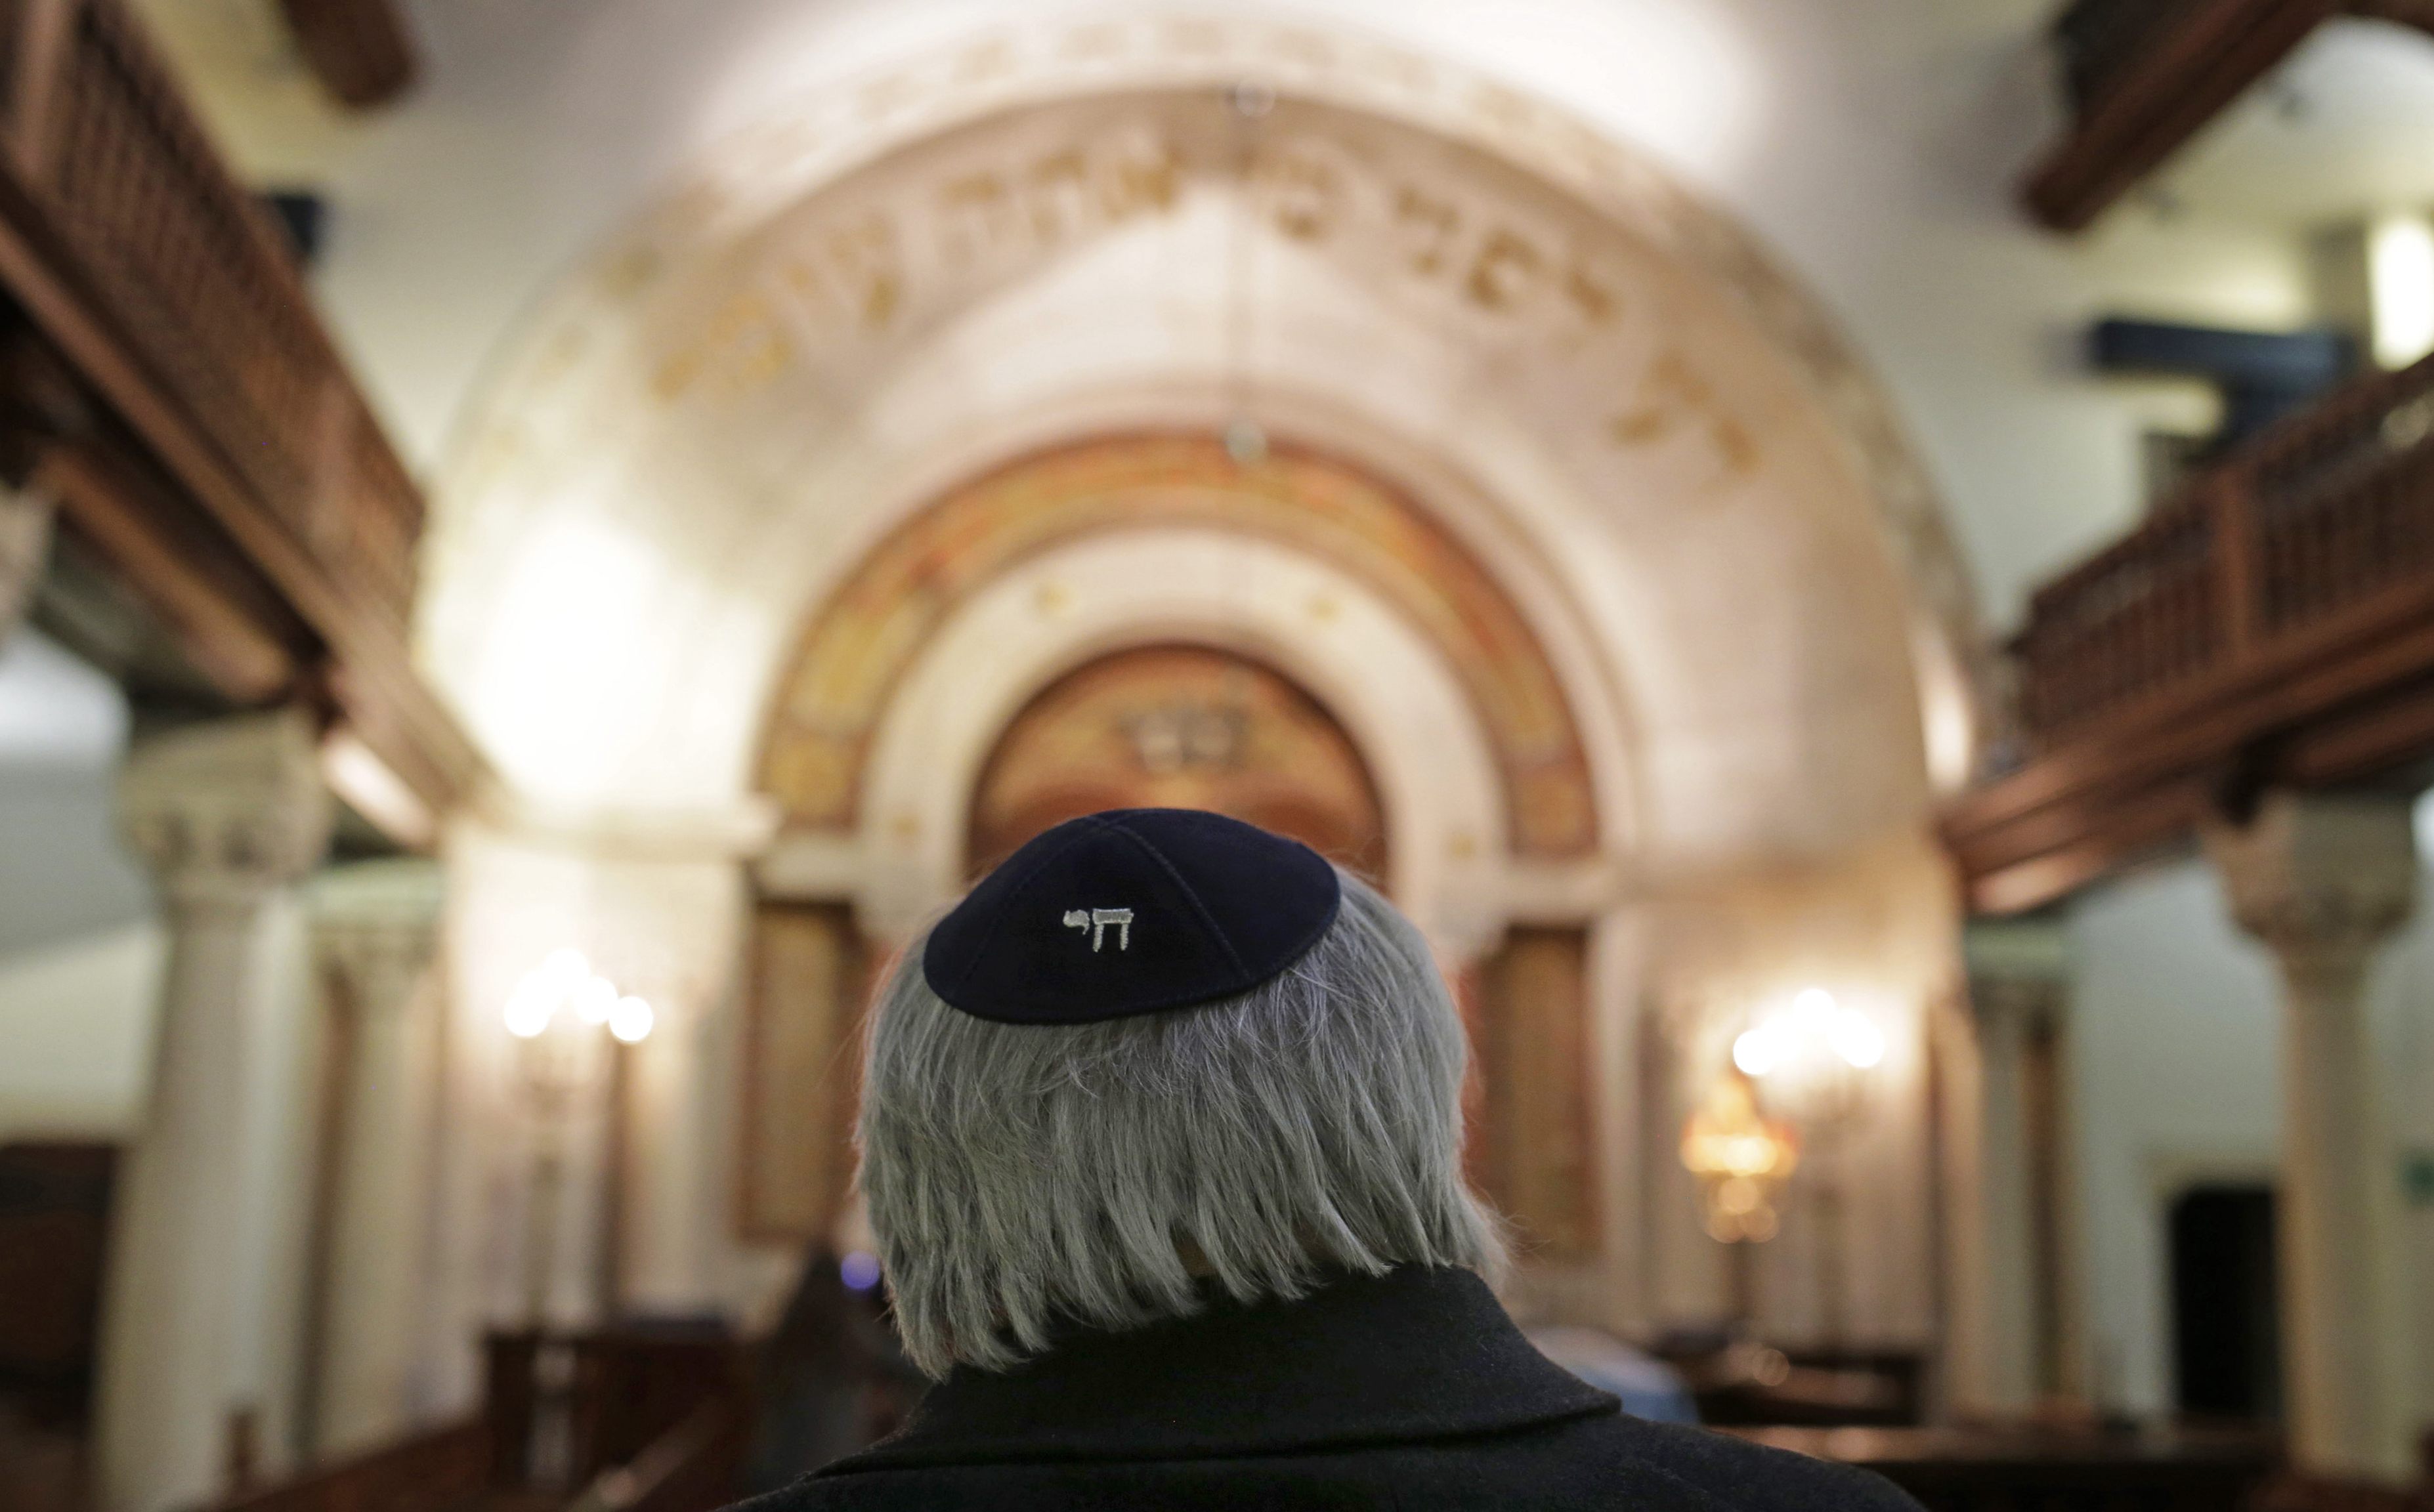 In this photo taken on Wednesday, Jan. 28, 2015, Jose Oulman Bensaude Carp, President of the Jewish community in Lisbon, waits to be interviewed by The Associated Press at the main Jewish synagogue in Lisbon.